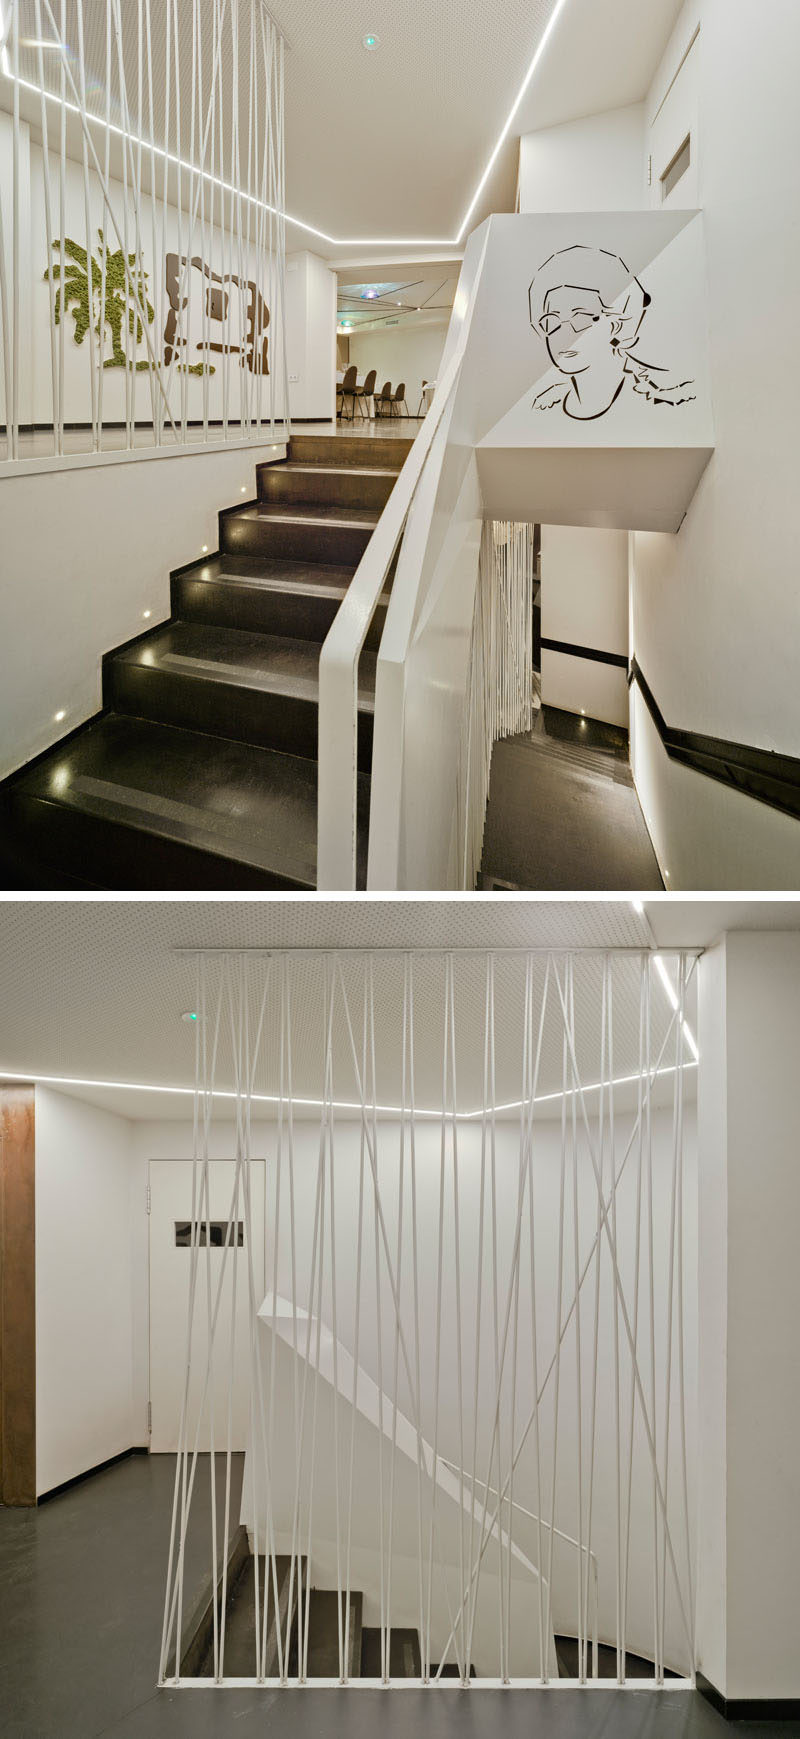 This modern restaurant has stairs featuring a white metal rod safety barrier. #Stairs #StairDesign